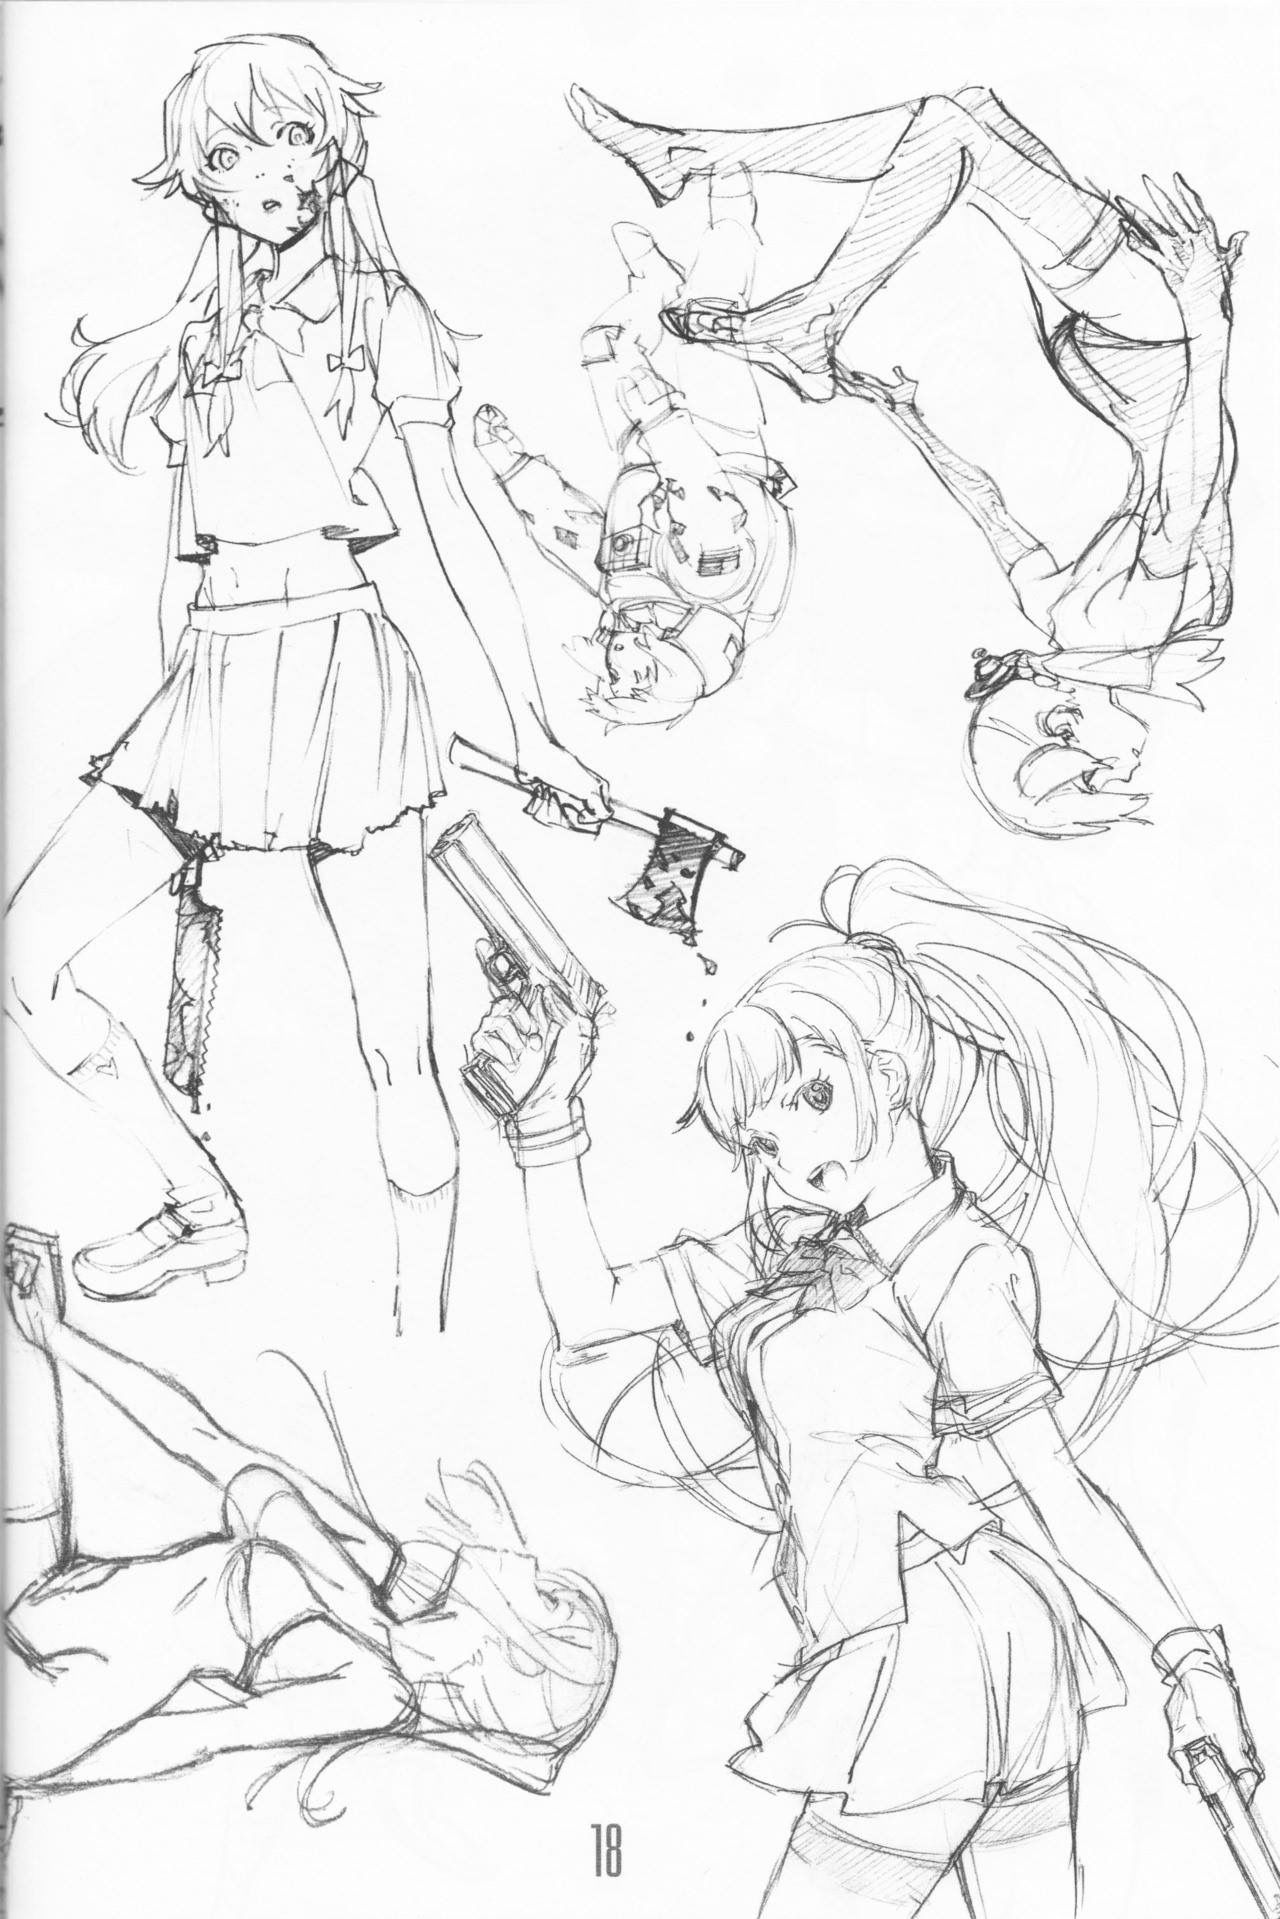 Pin By Guy 478 On Pose Reference Anime Sketch Drawings Art Reference Poses